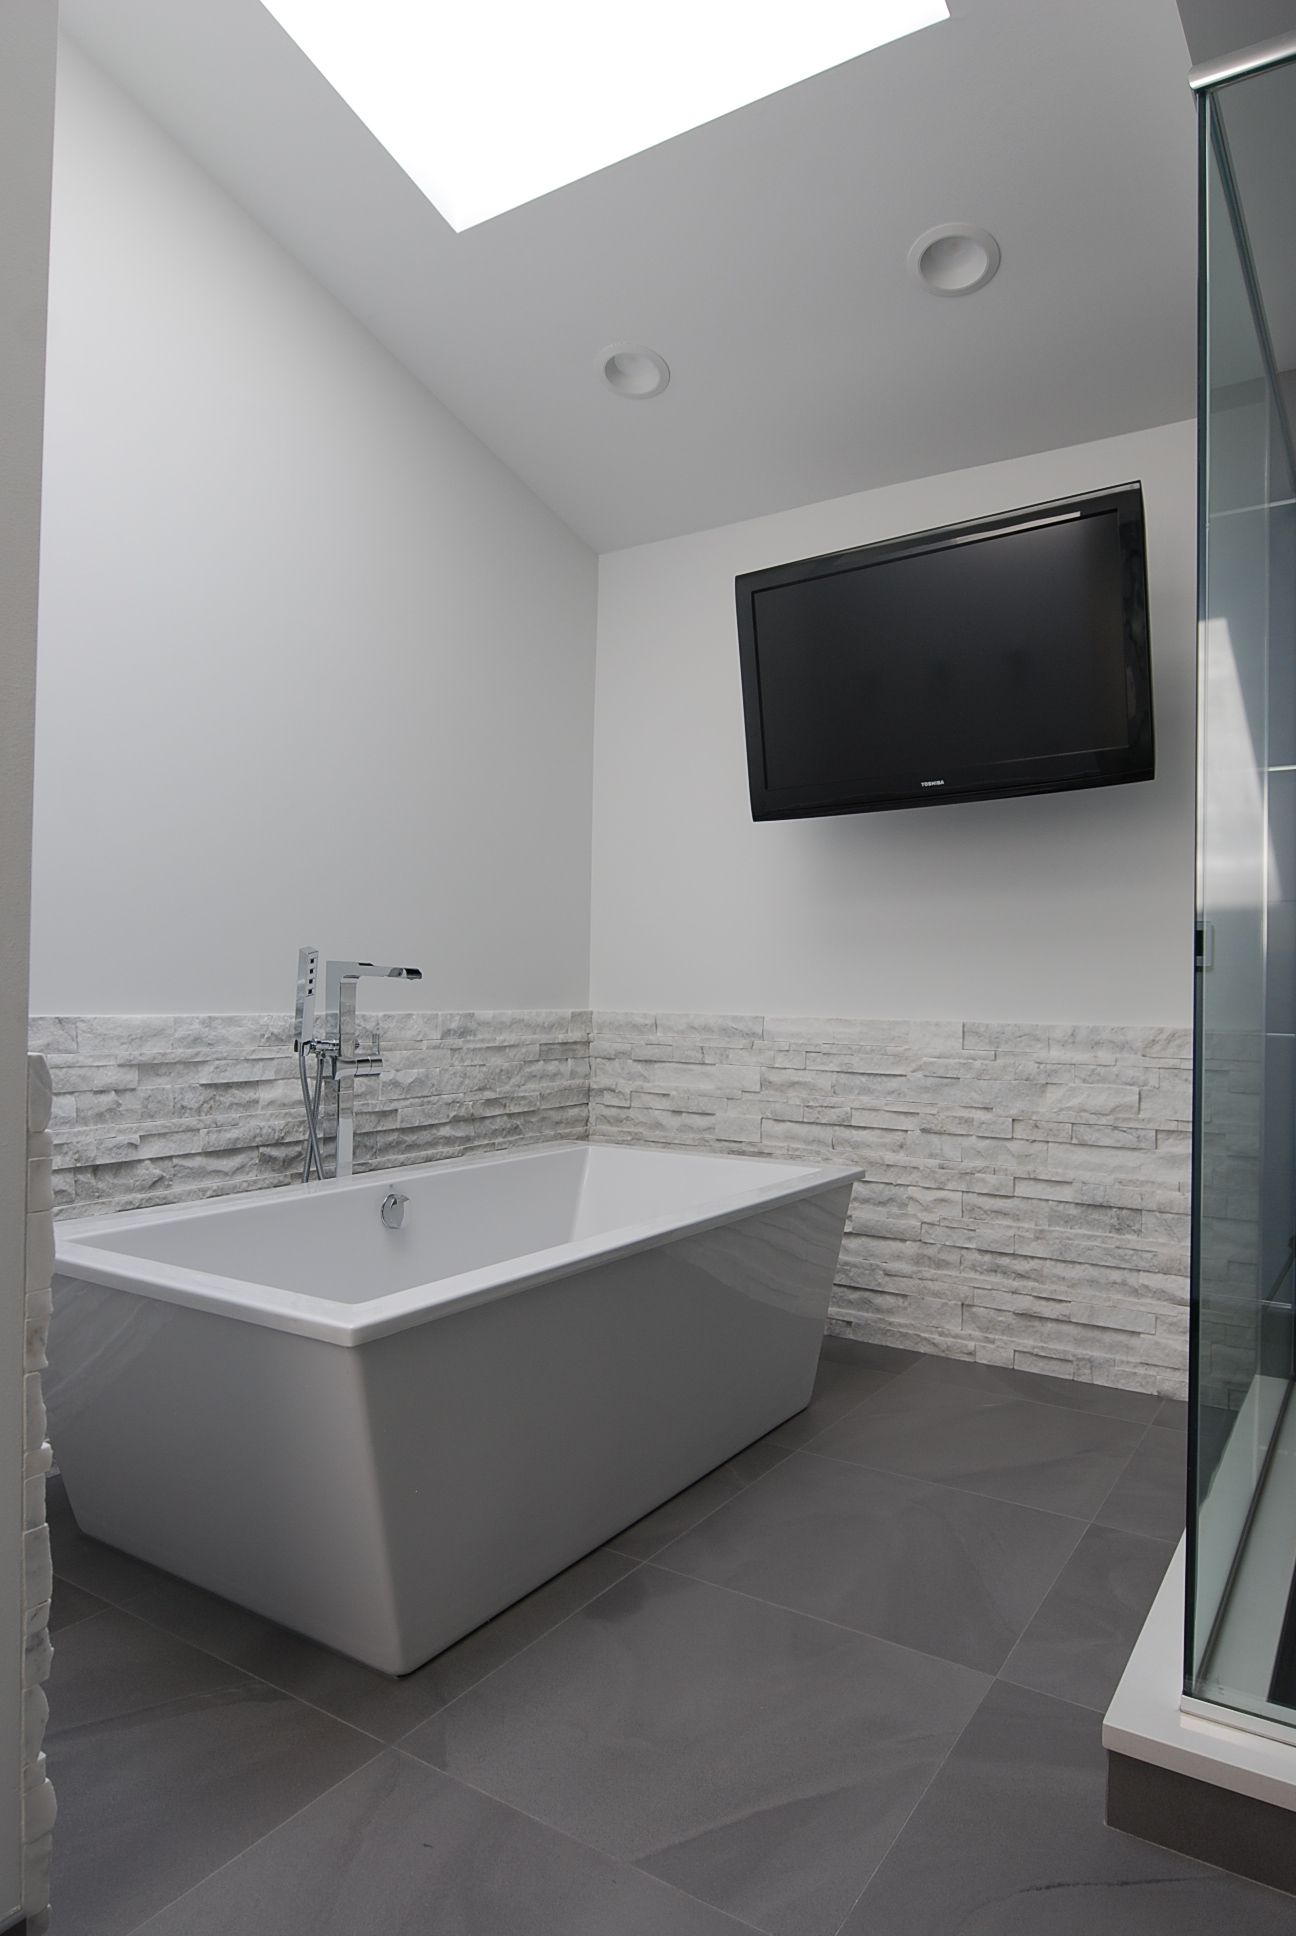 Free Standing Tub With Tv Mounted On Wall Grey White Contemporary Bathroom Modern Master Bathroom White S Modern Master Bathroom Tv In Bathroom Modern Tub